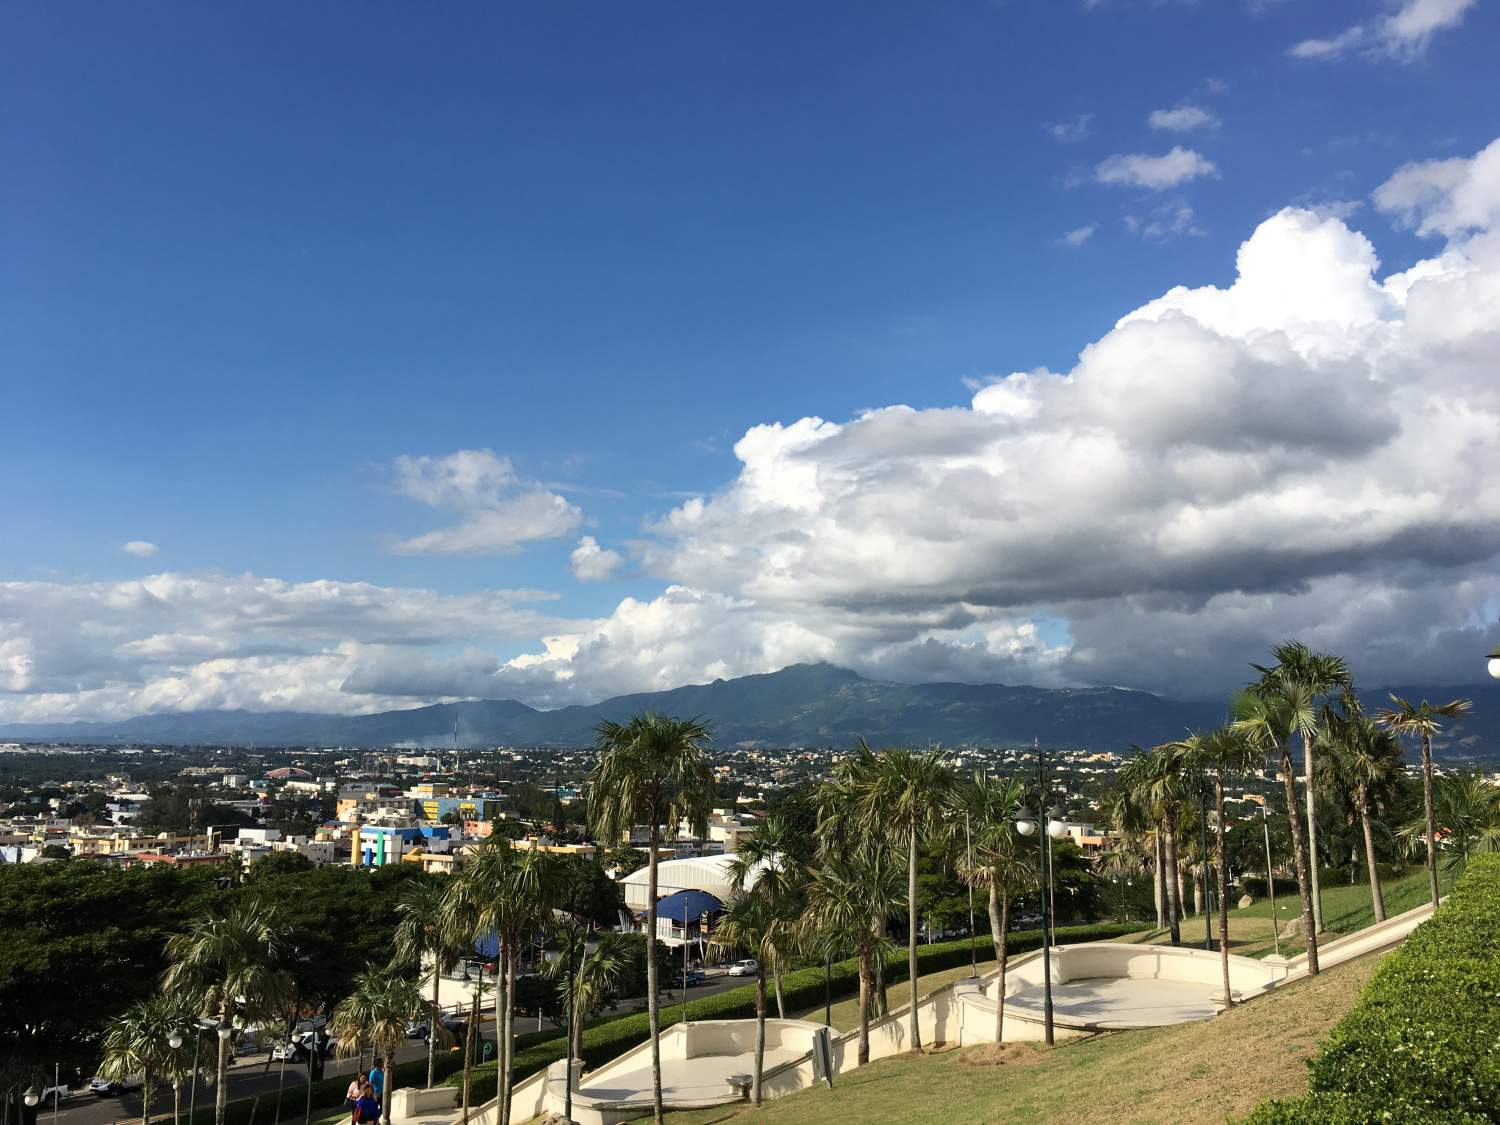 View of Santiago for the top of heroes monument, Dominican Republic